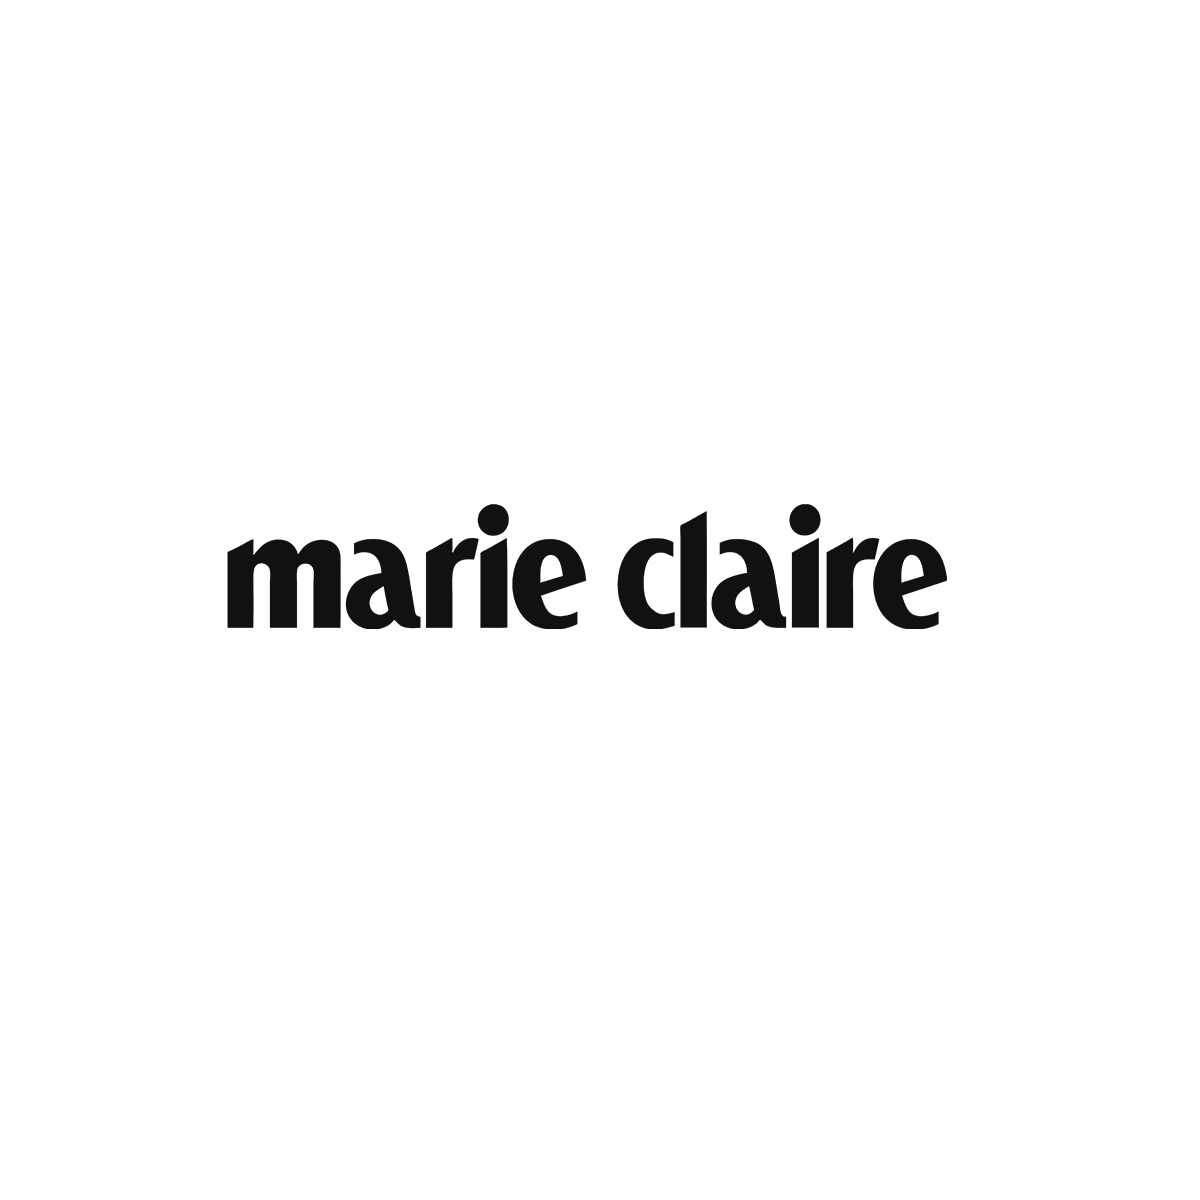 an image of the marie claire logo